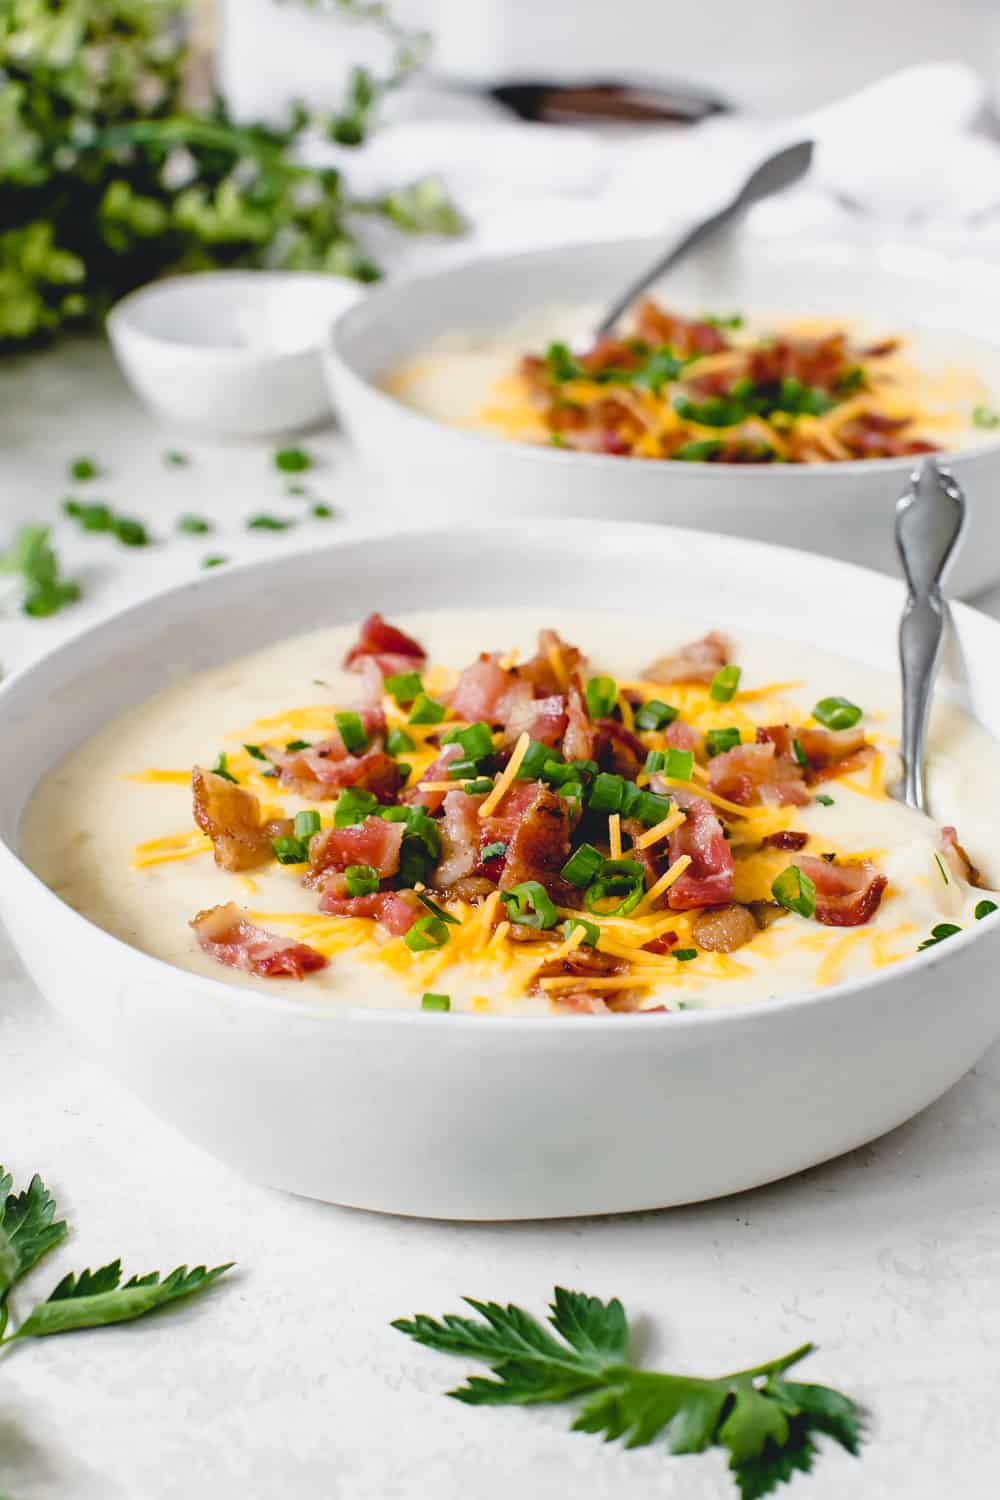 Two bowls full of loaded baked potato with a spoon garnished with chopped bacon, cheese and green onions.